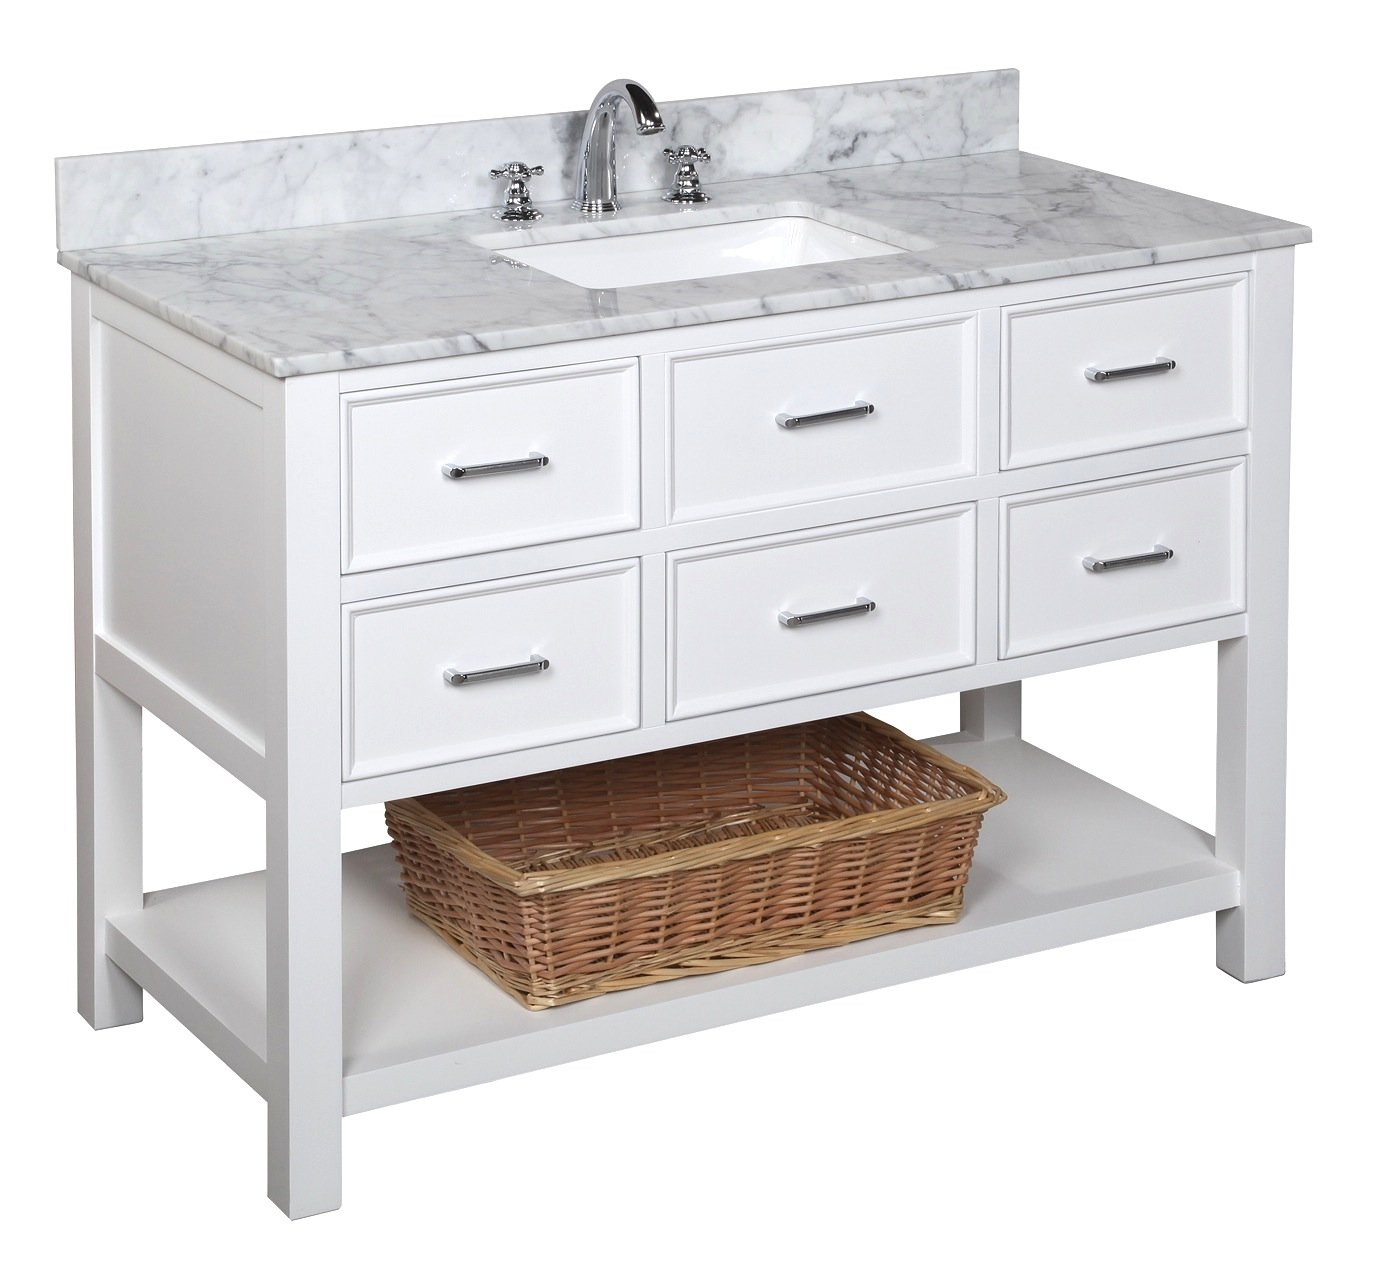 New Hampshire 48-inch Bathroom Vanity Carrara White Includes Authentic Italian Carrara Marble Countertop, White Cabinet with Soft Close Drawers, and White Ceramic Sink